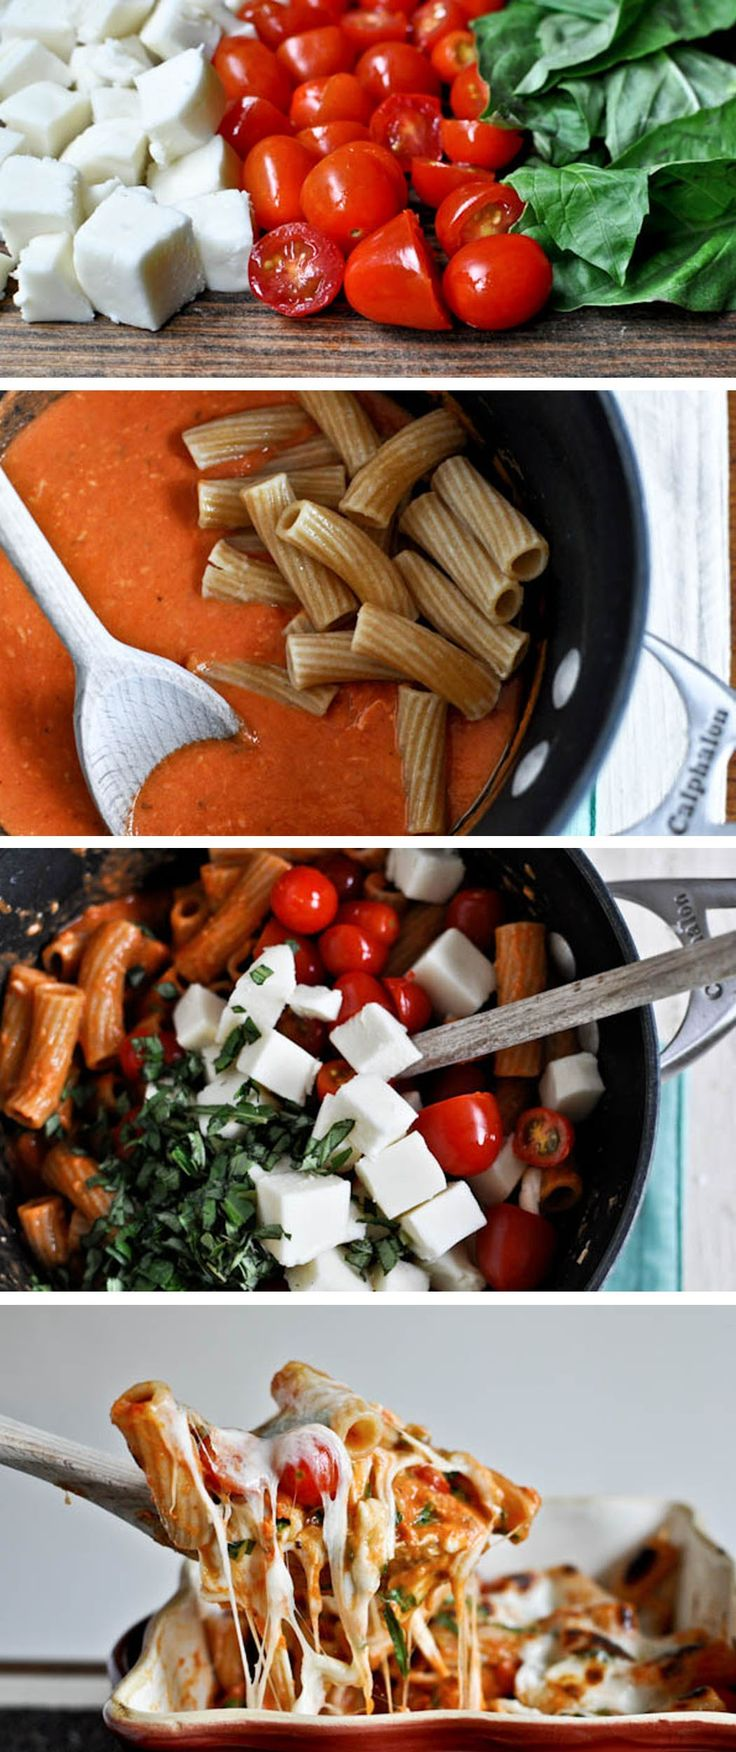 Try this Creamy Caprese Pasta recipe for dinner. #pasta #noodles #recipe #easy #recipes